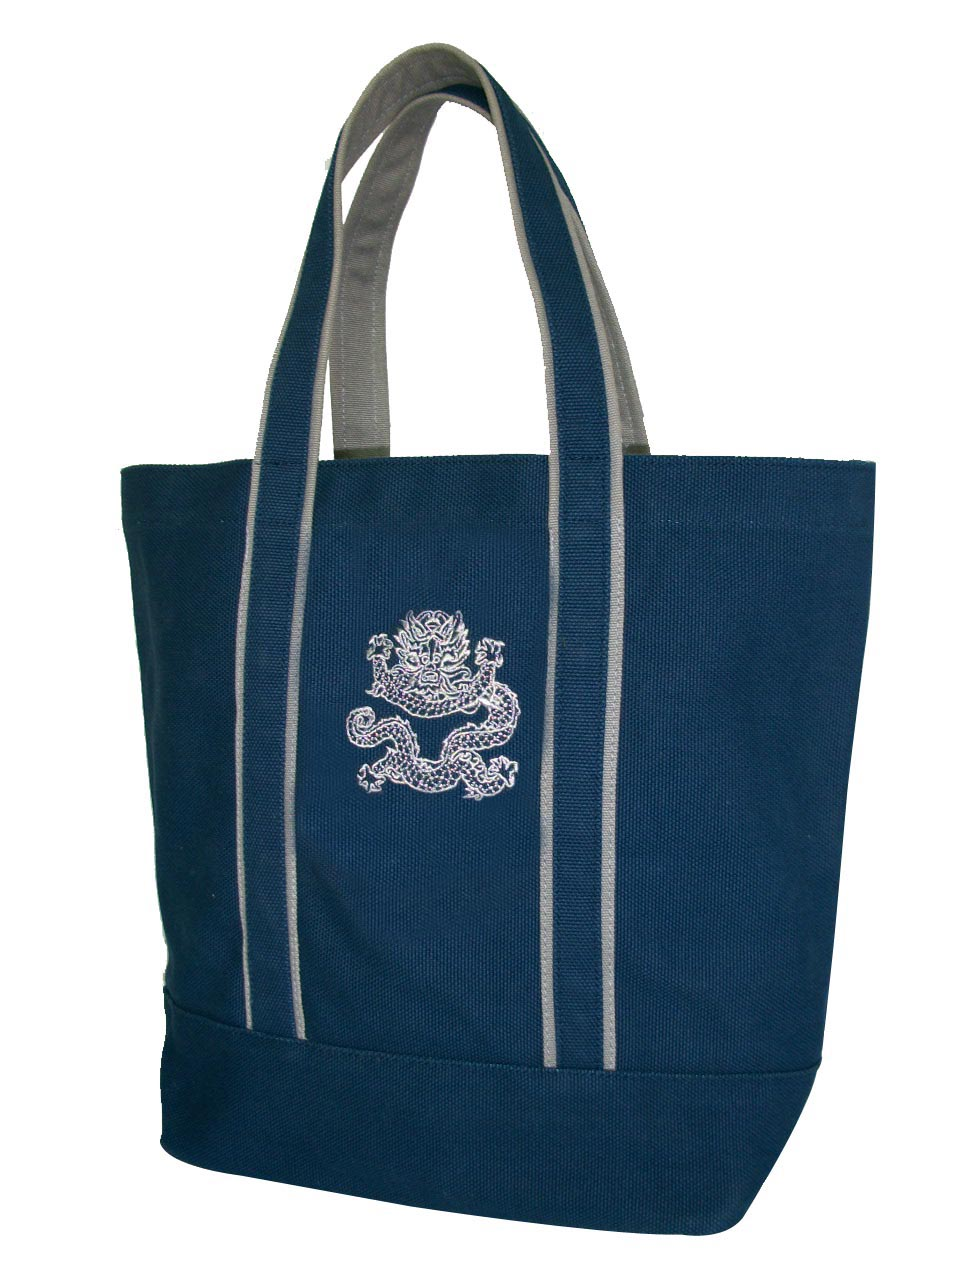 Shopping Bag -10